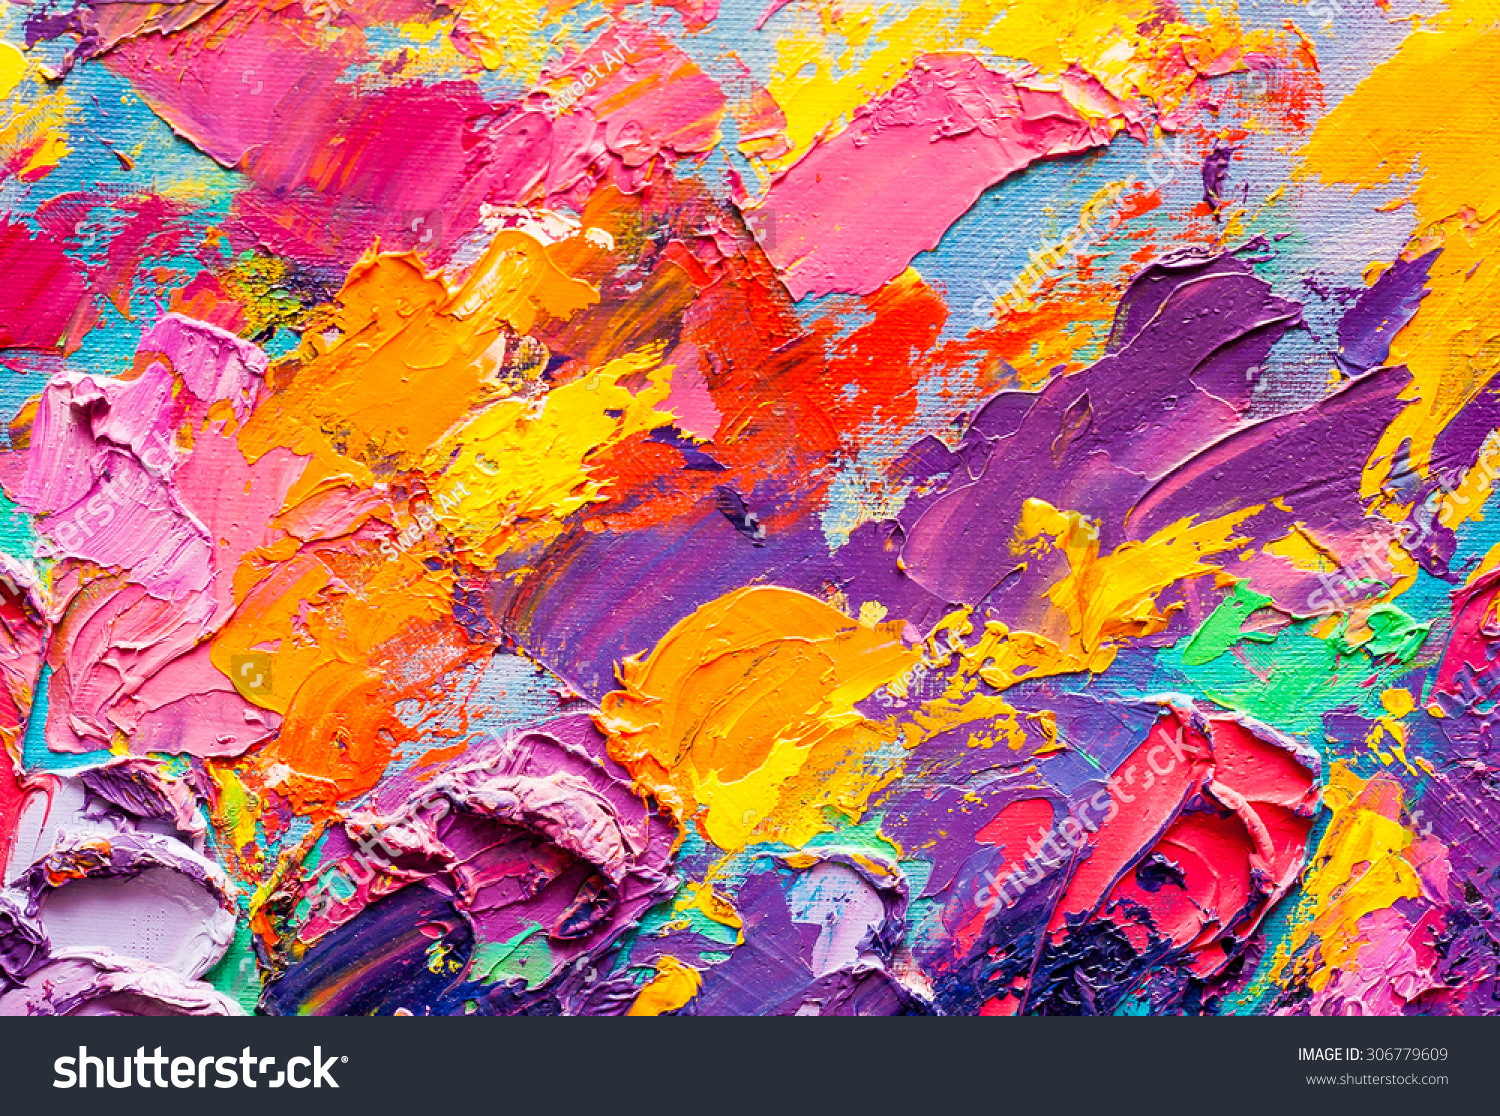 Oil Painting Abstract With Texture